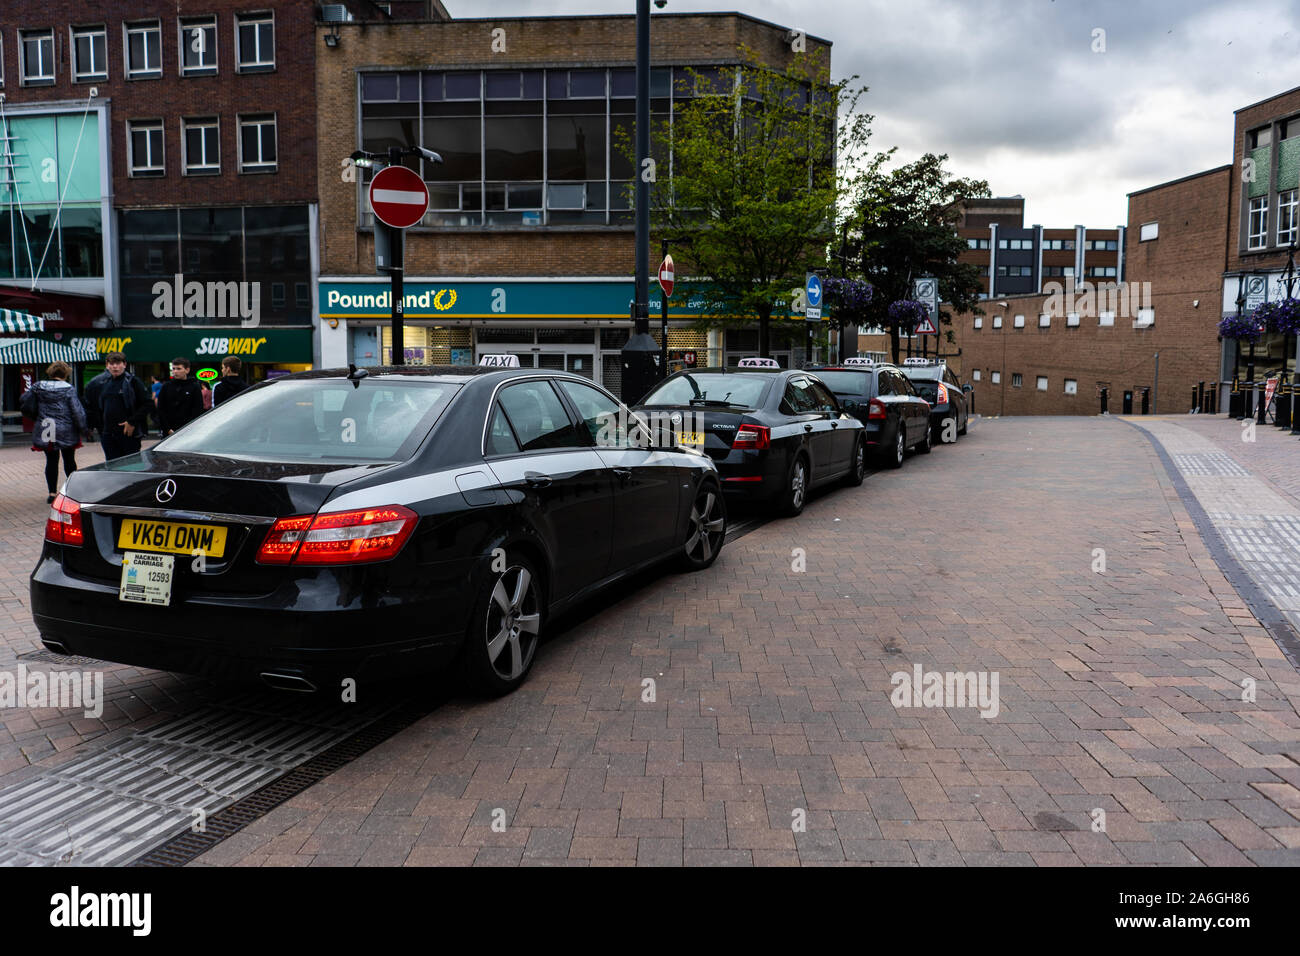 A selection of Taxi's, cabs wait for customers on the high street Stock Photo